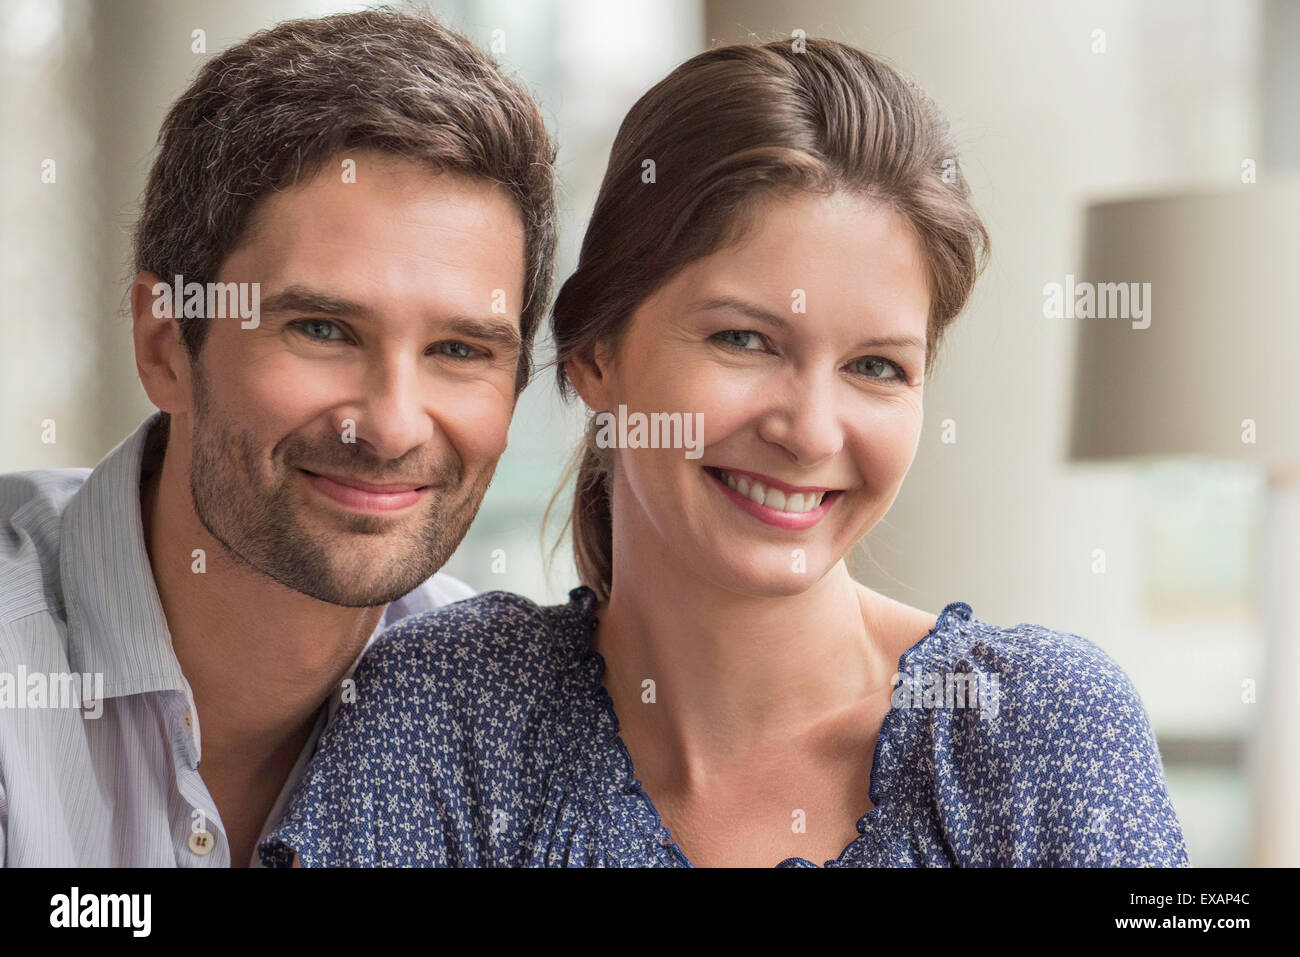 Couple together at home, portrait - Stock Image